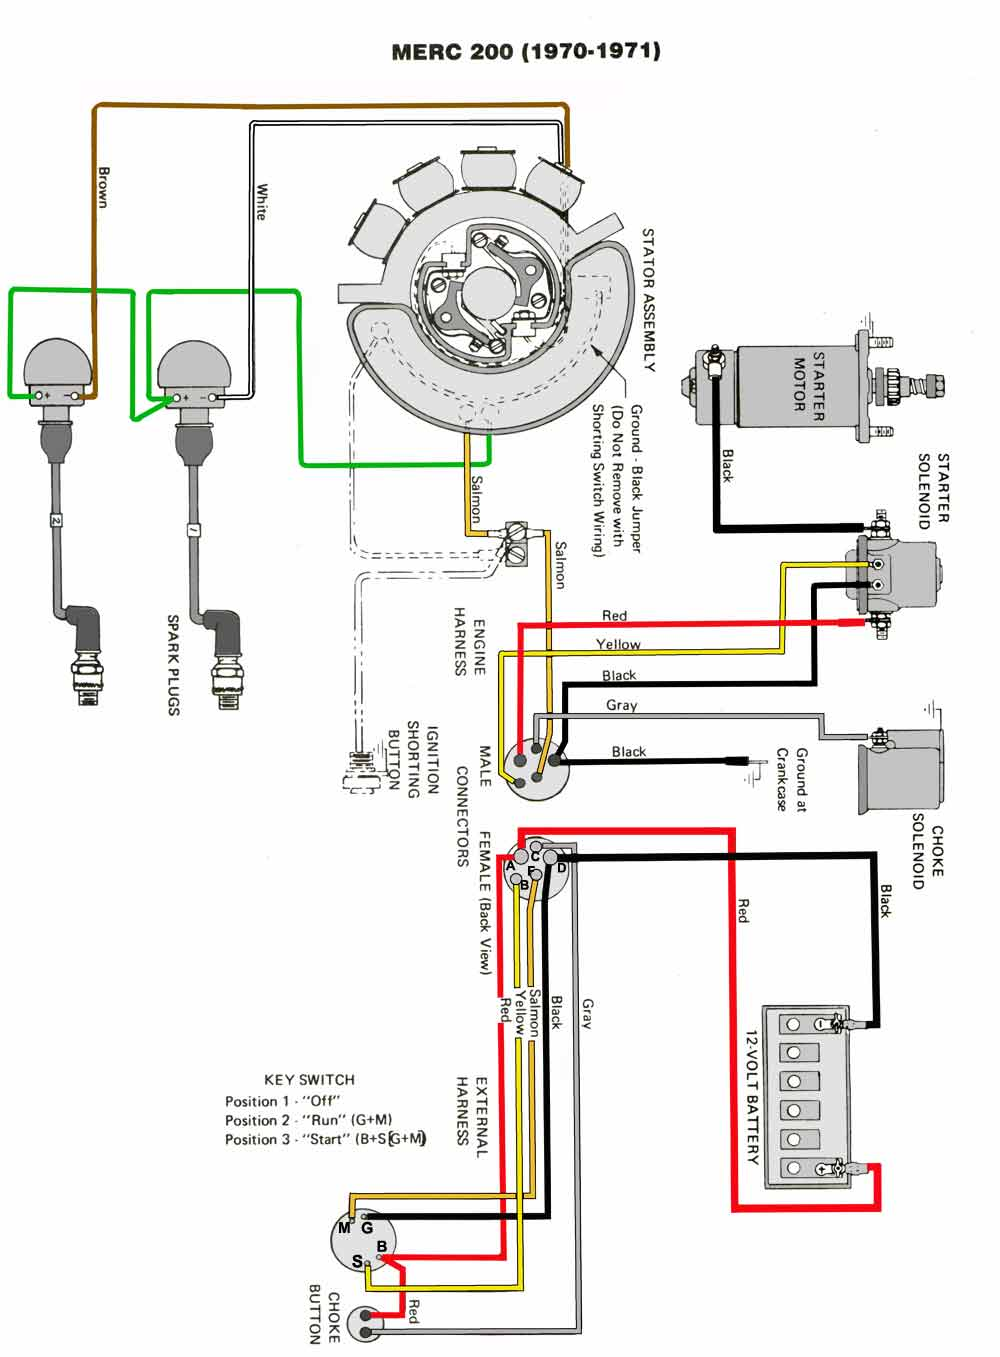 Pleasant Mercury Marine Wiring Harness Diagram General Wiring Diagram Data Dandim Mohammedshrine Wiring Diagrams Dandimmohammedshrineorg